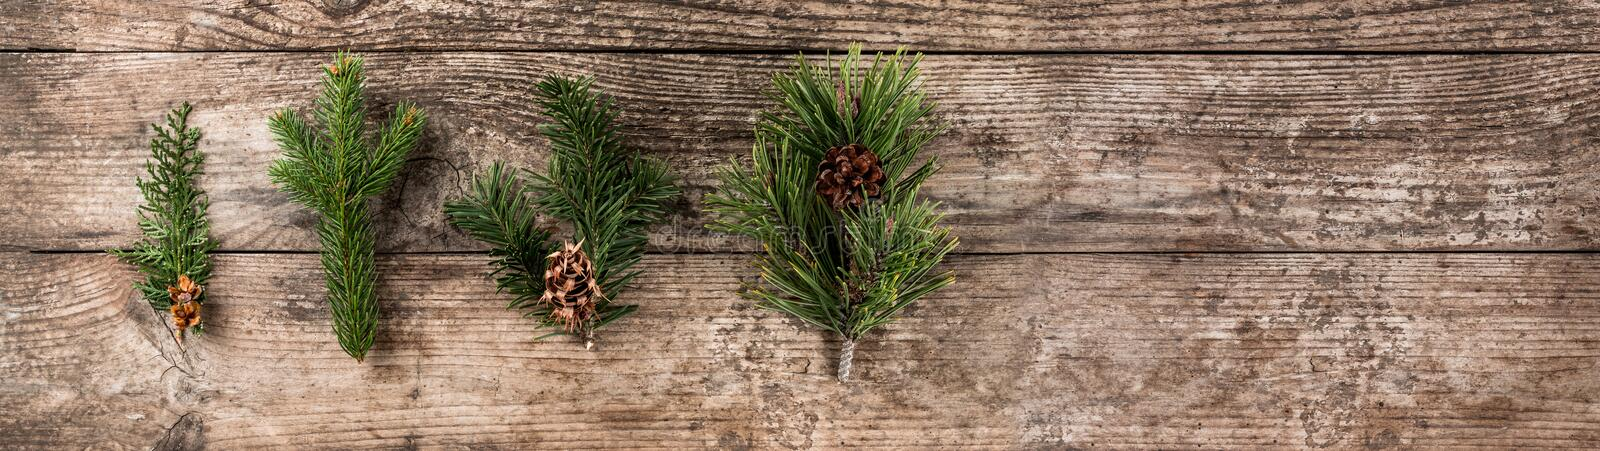 Christmas fir branch, spruce, juniper, fir, larch, pine cones on wooden background. Xmas and New Year theme royalty free stock photo